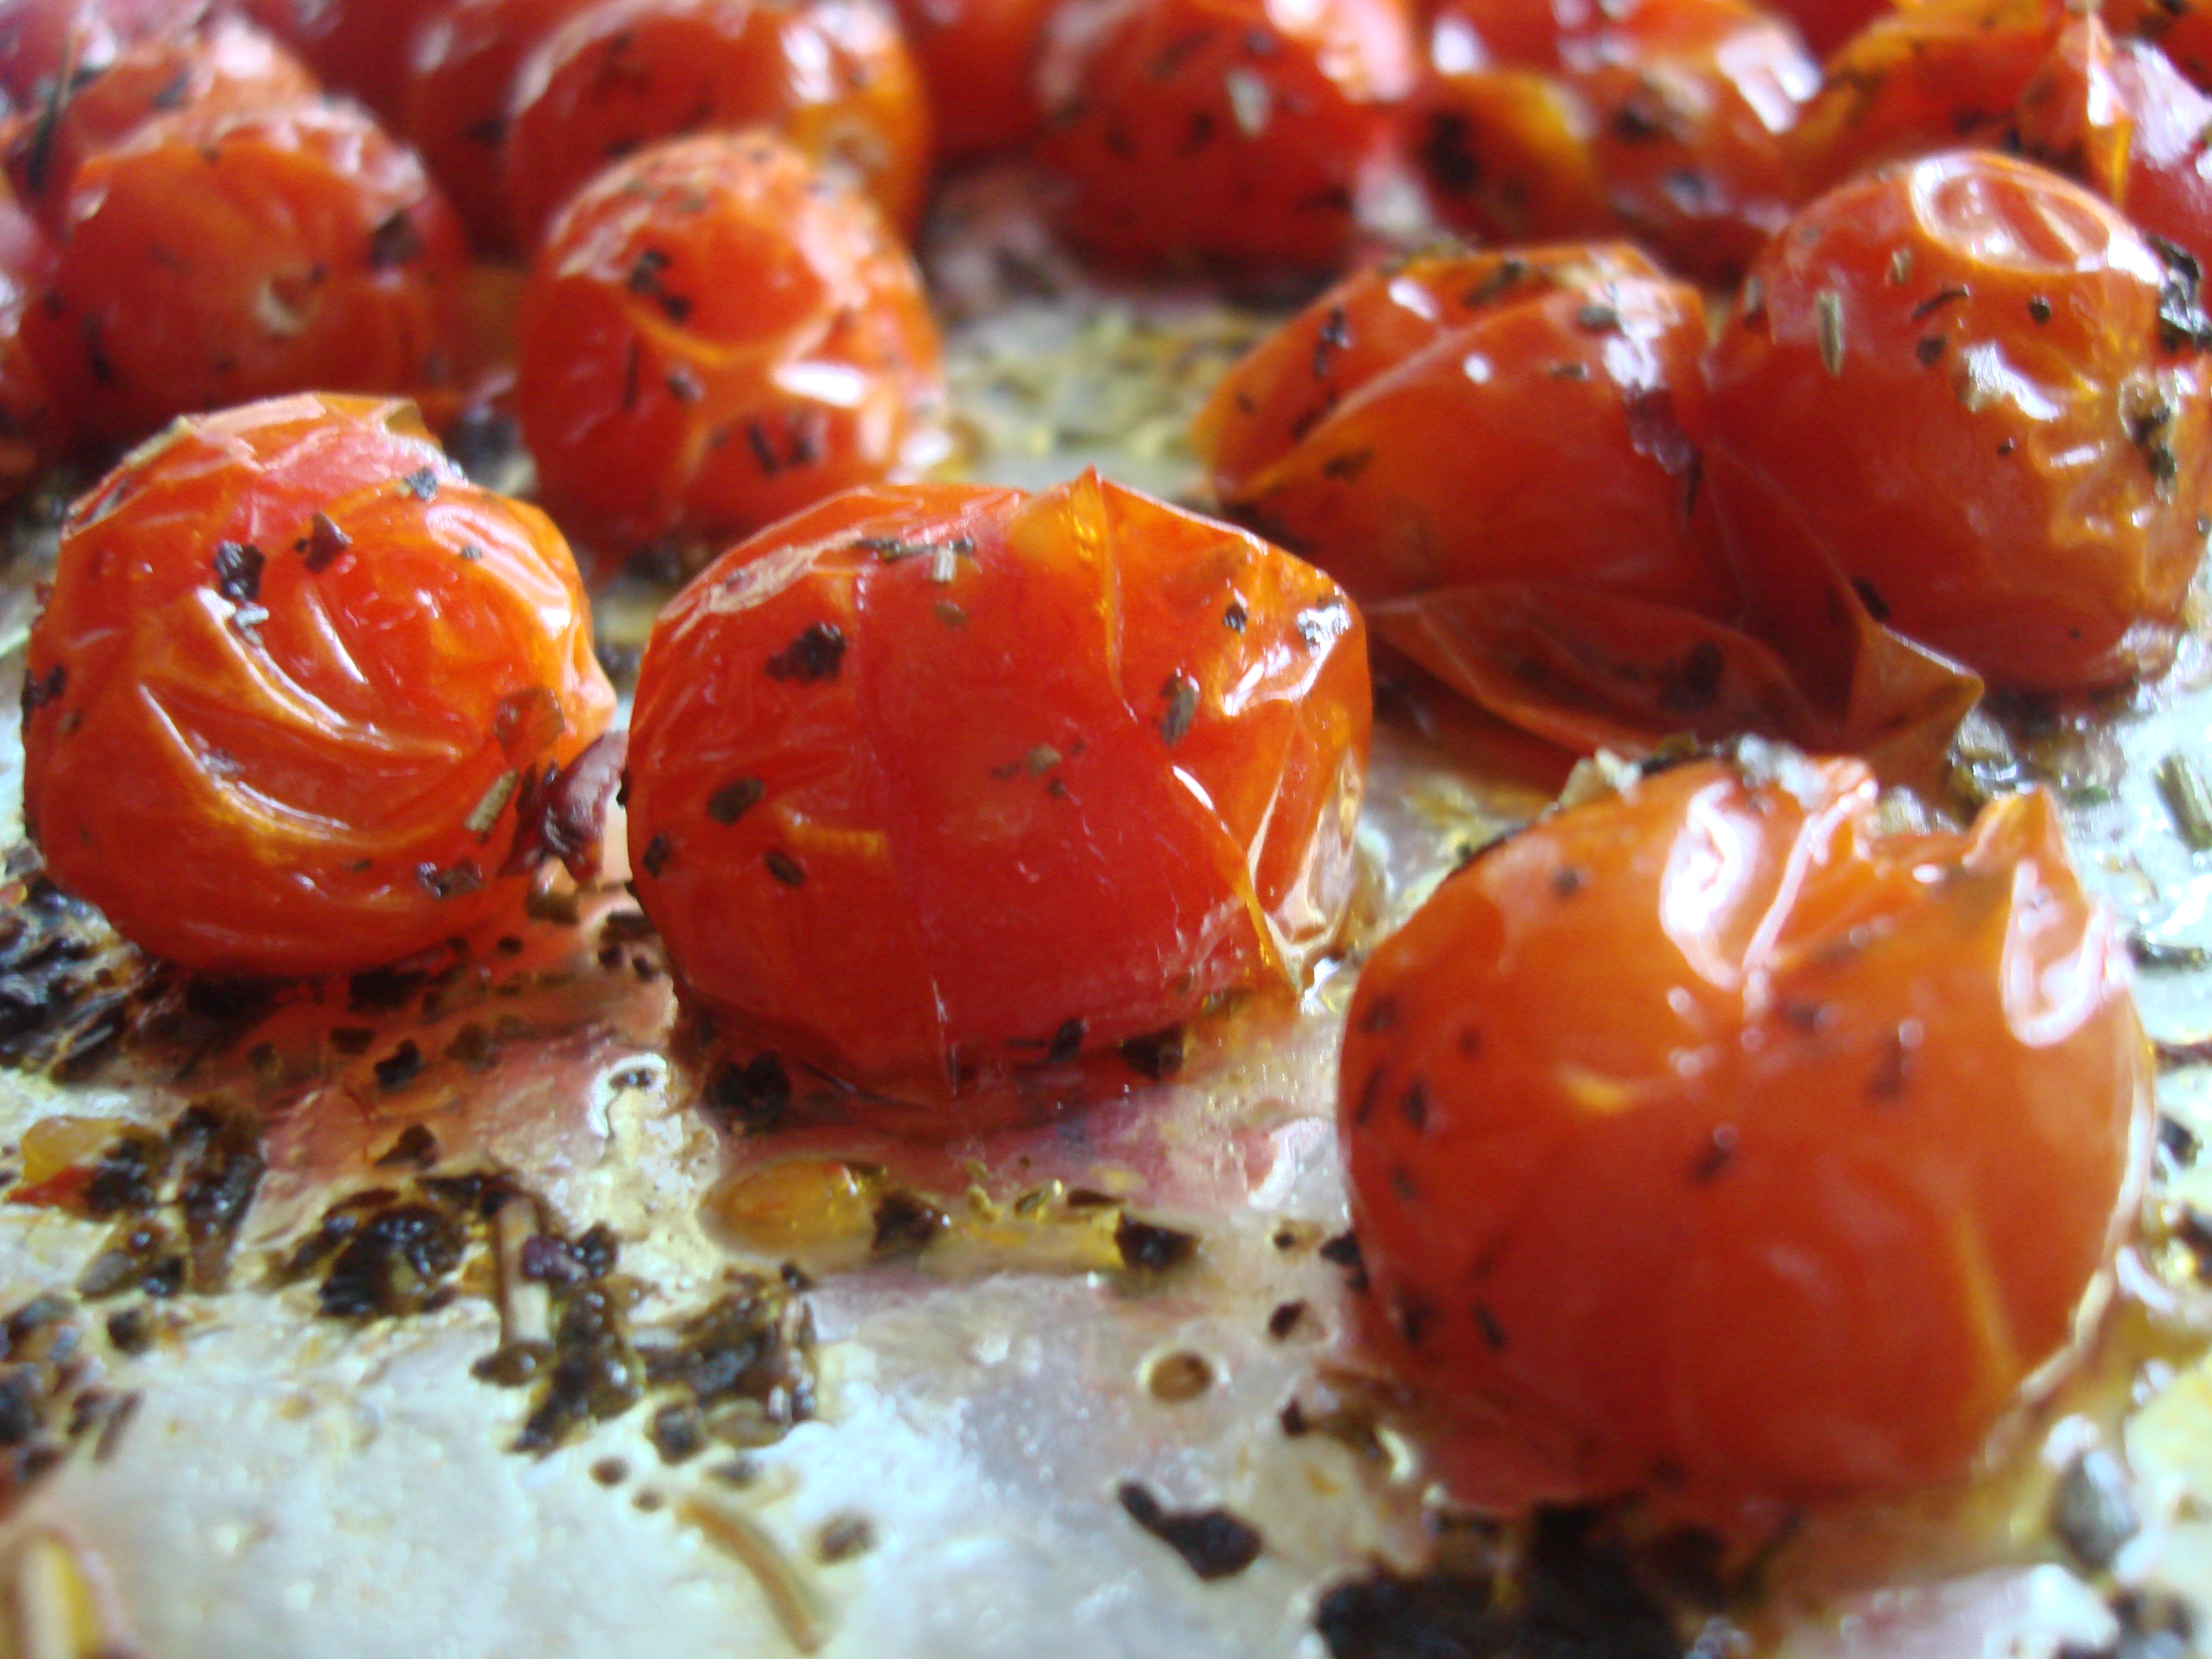 ... roasted tomatoes oven roasted tomatoes oven roasted tomatoes roasted